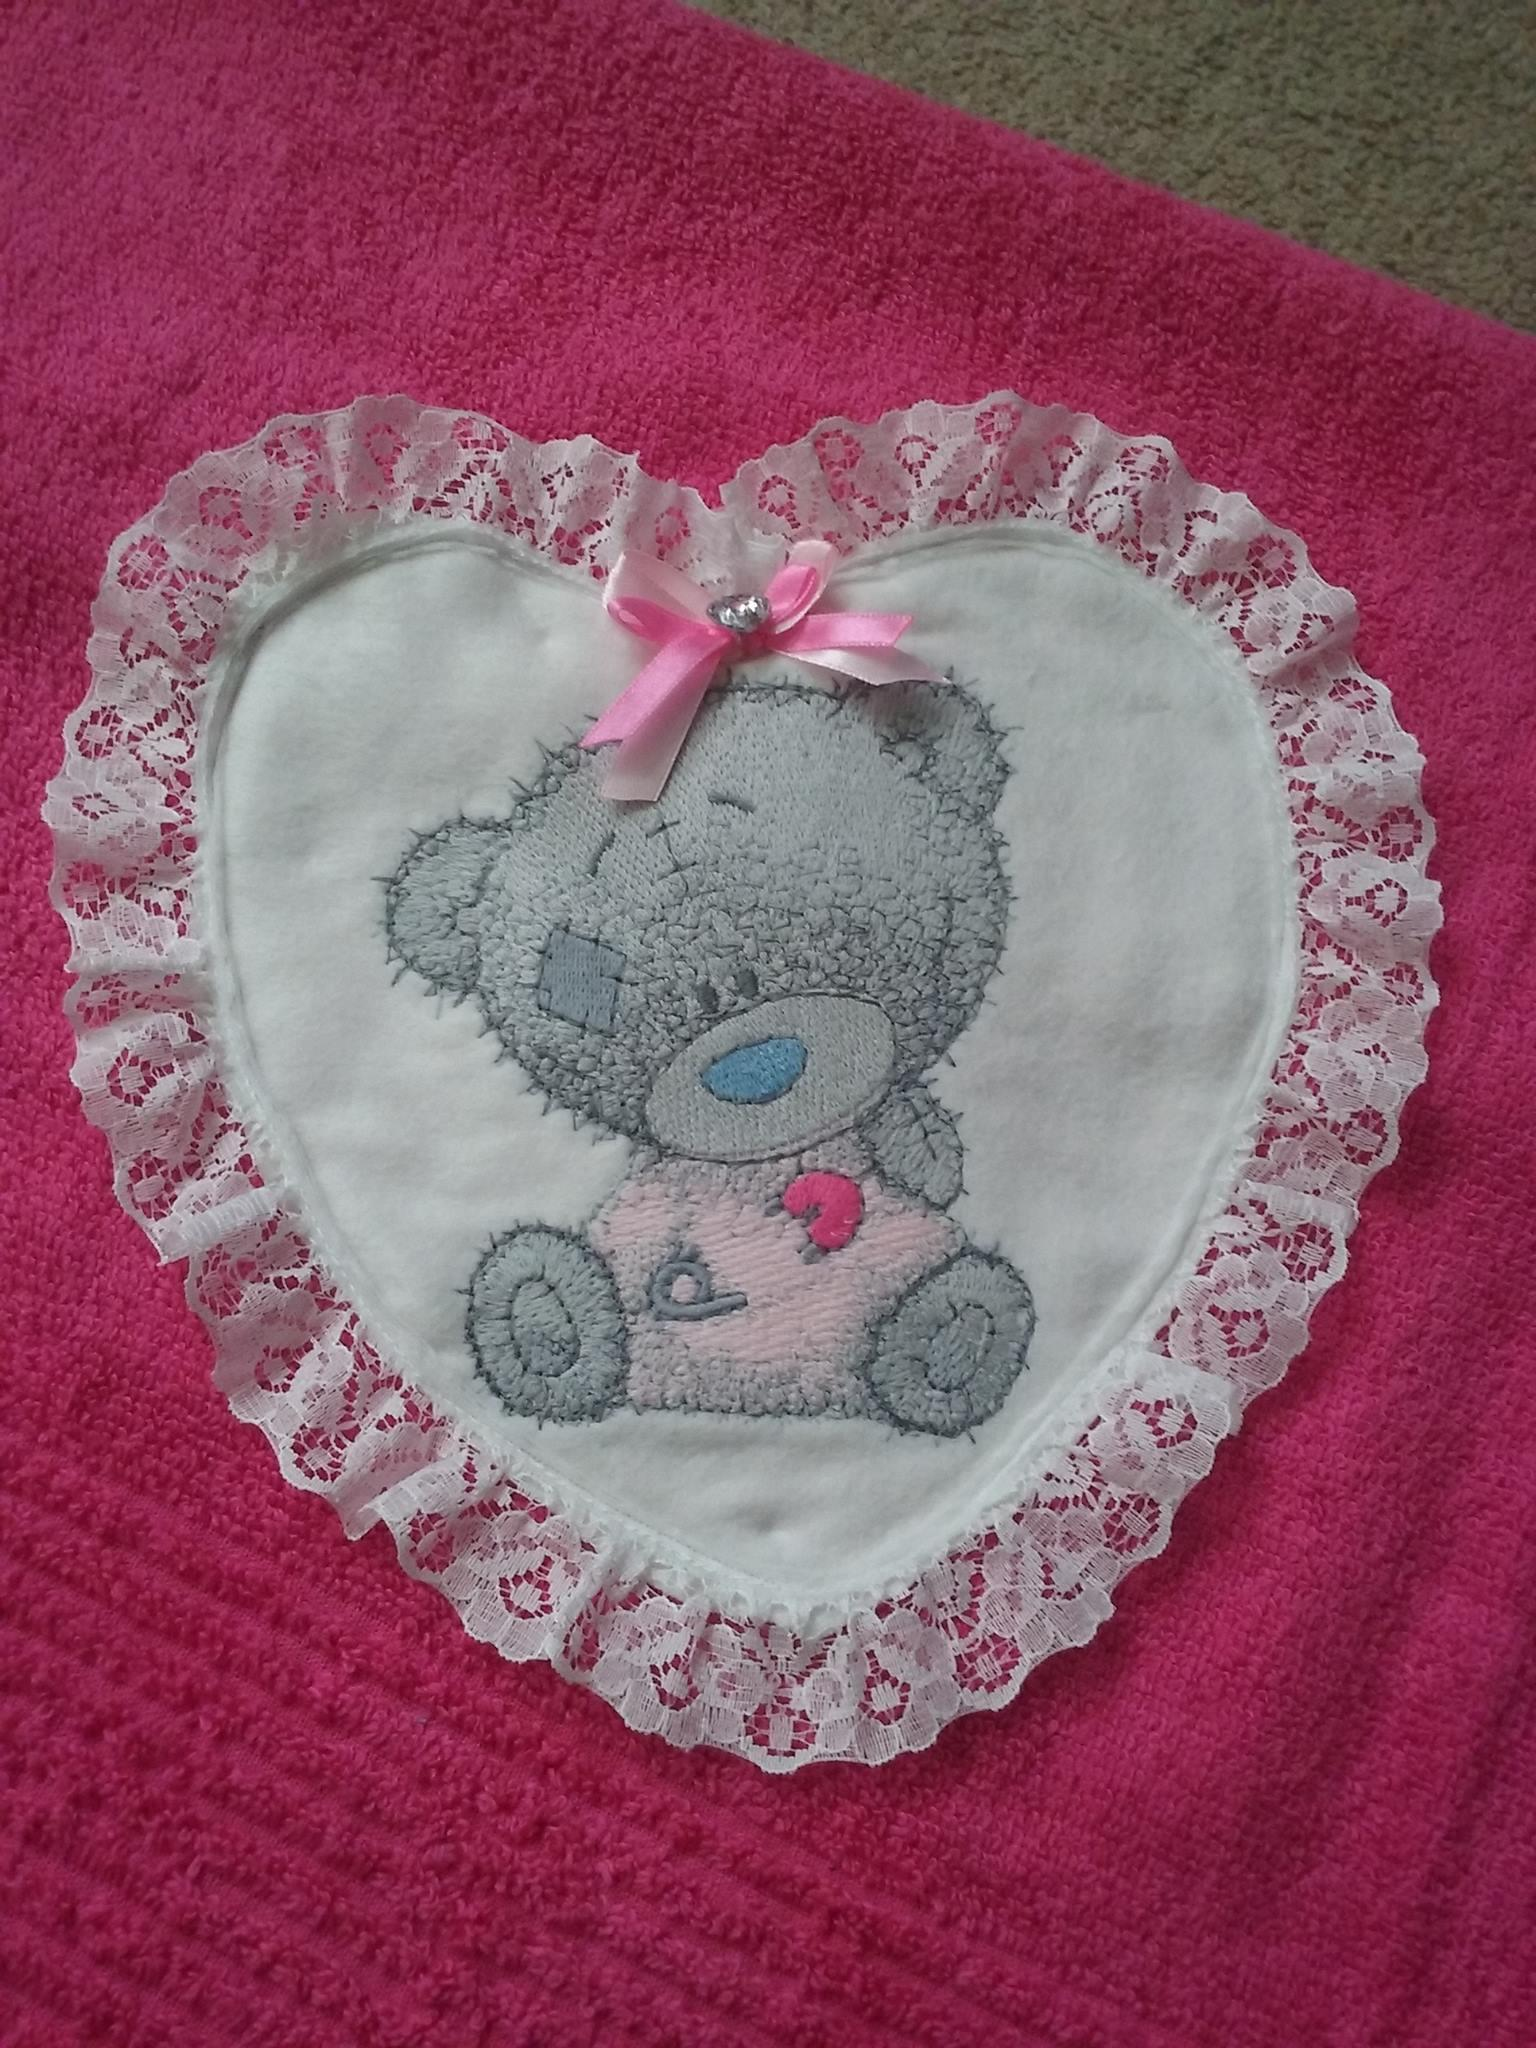 Cushion with heart applique  and Teddy bear I dressed myself embroidery design